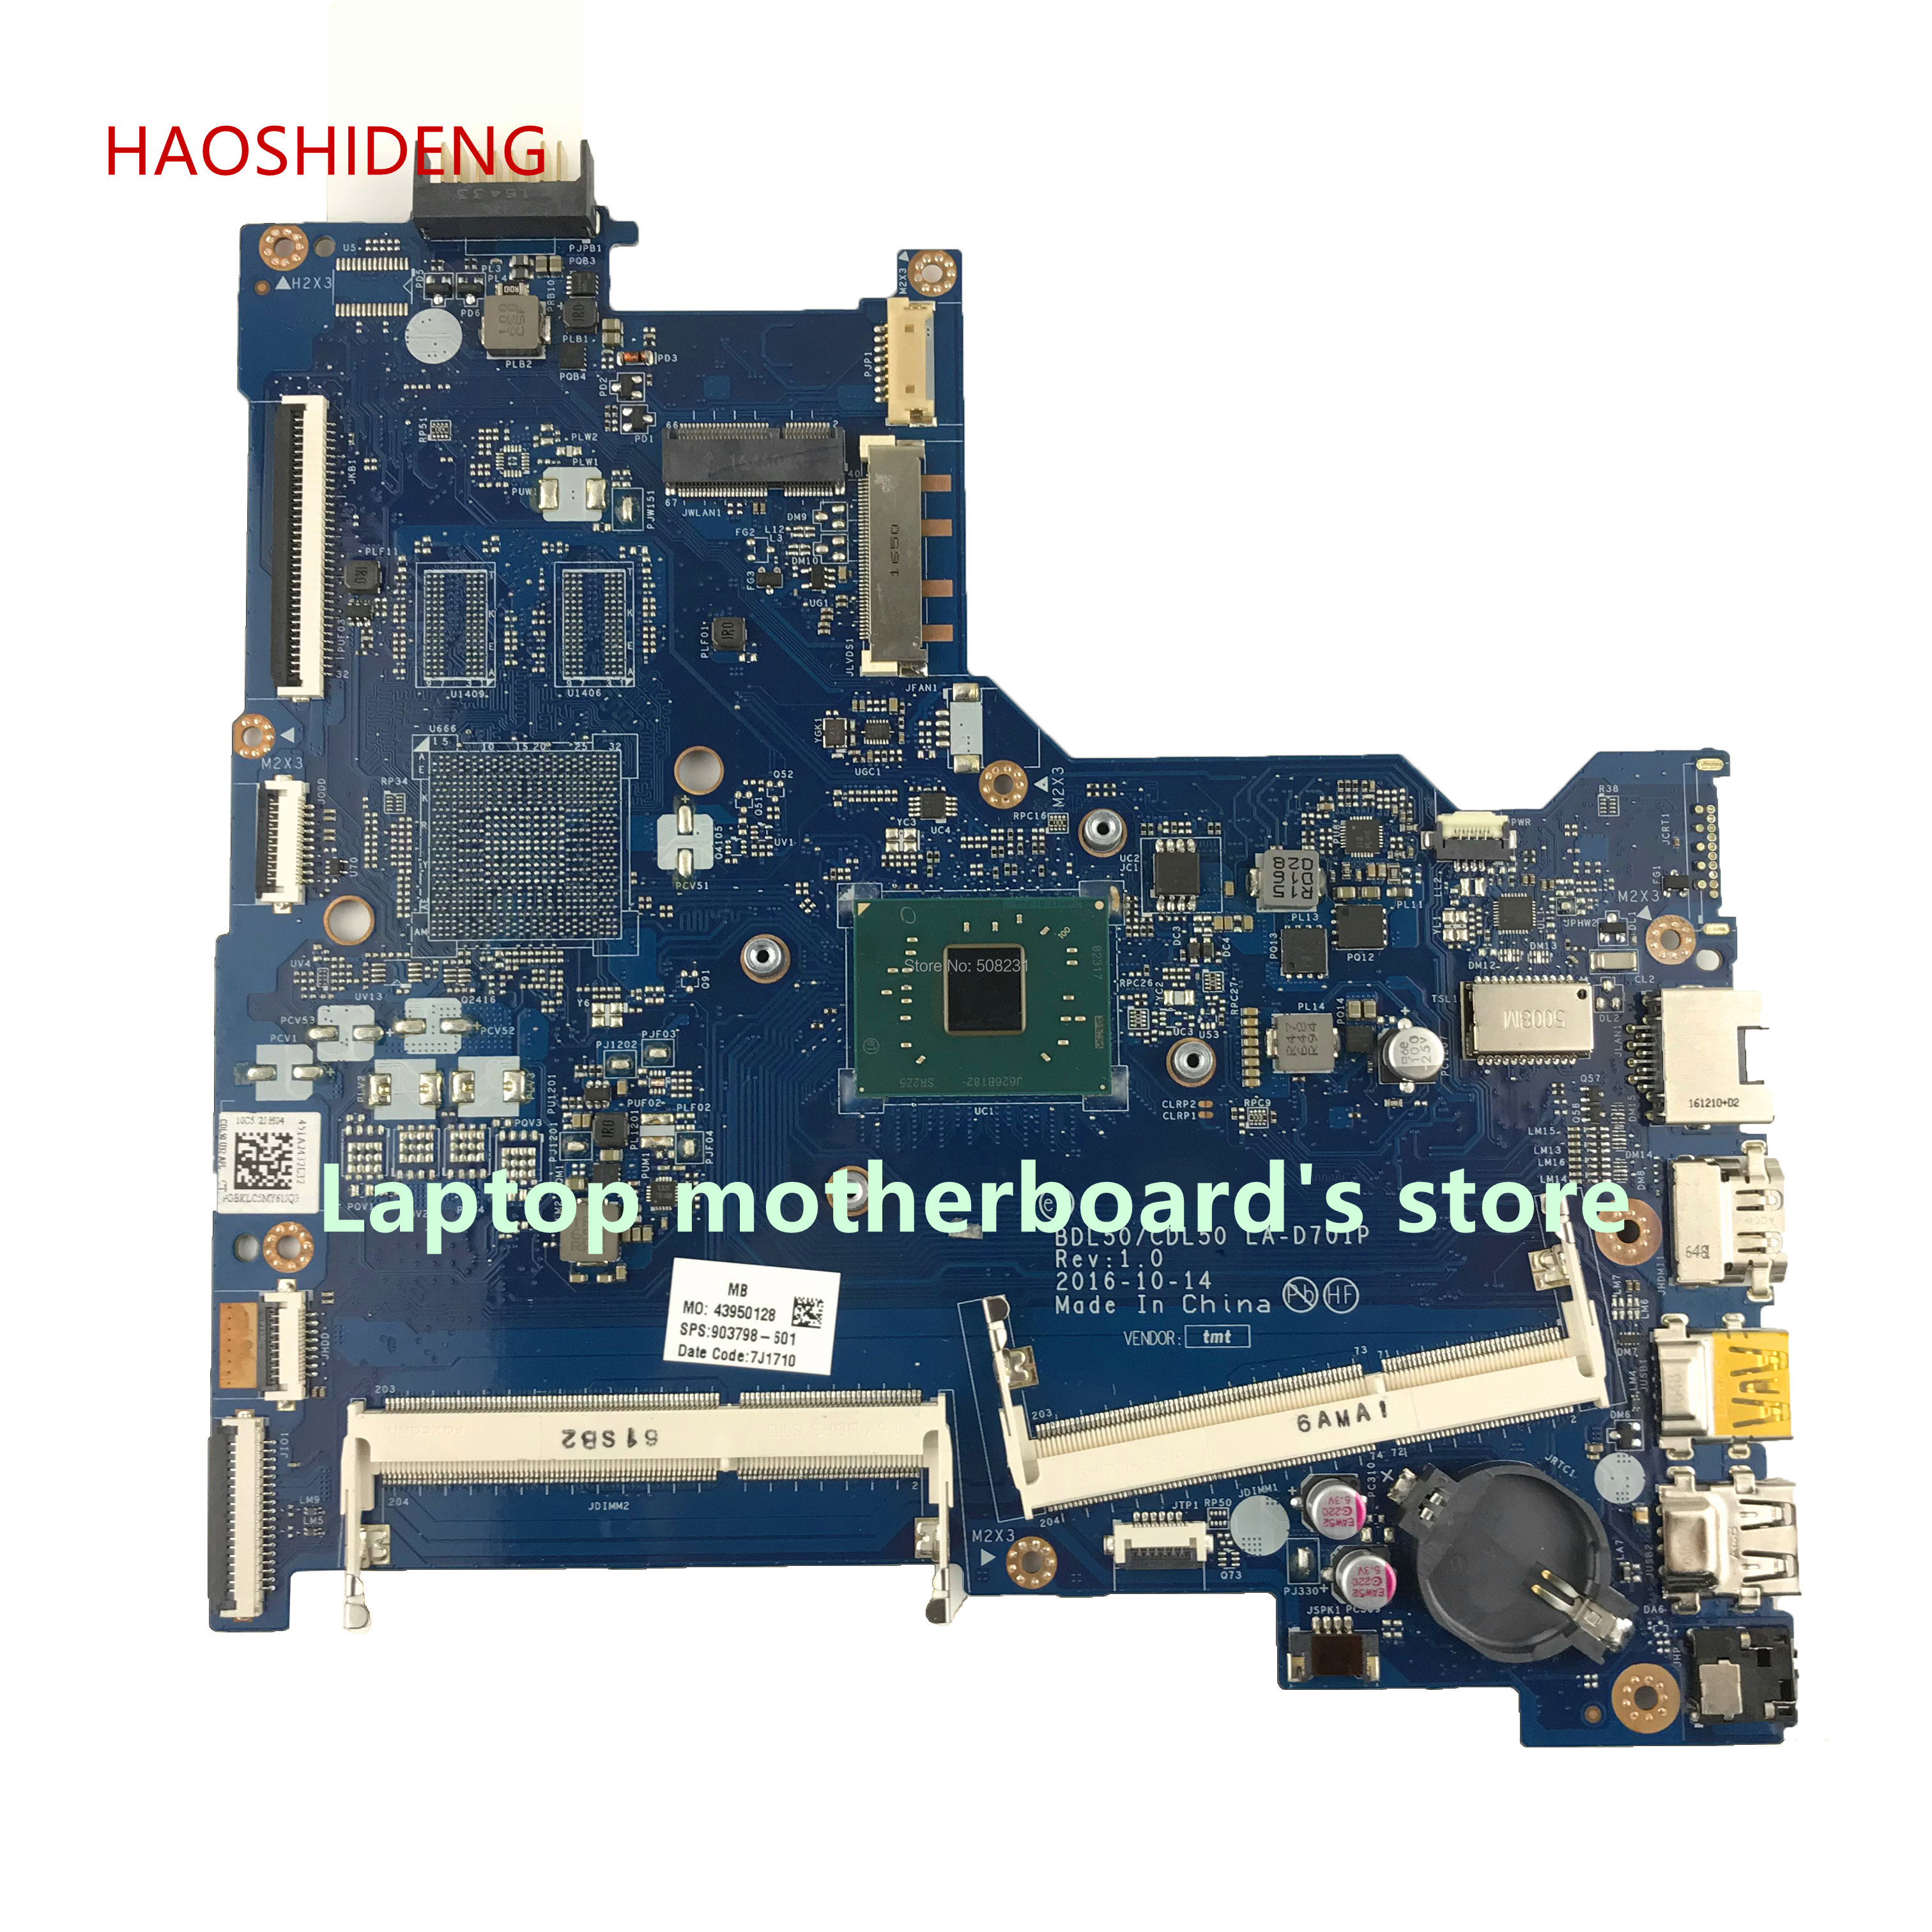 HAOSHIDENG 903798-601 LA-D701P mainboard for HP NOTEBOOK 15-AY 15-ay128nx laptop motherboard with PentN4200 fully Tested